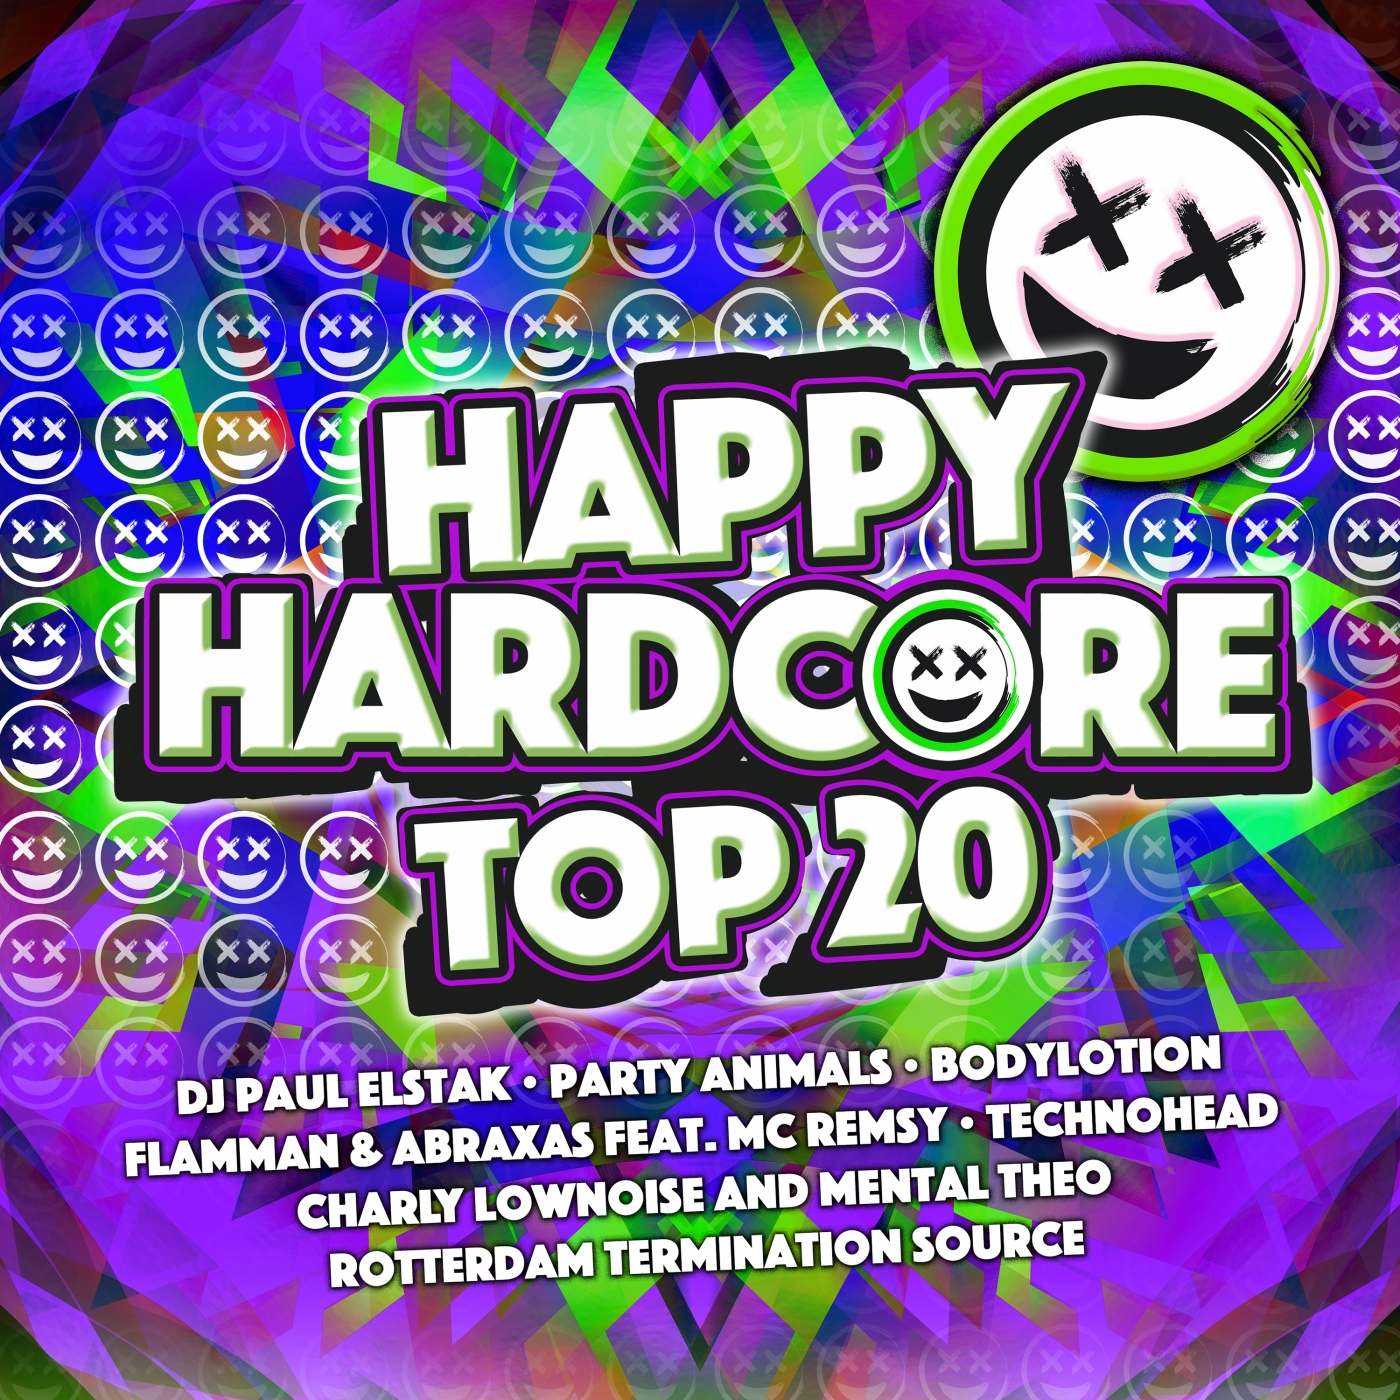 Happy hardcore 2016 top 20 cldm2016030 cd rigeshop for Top 20 house music